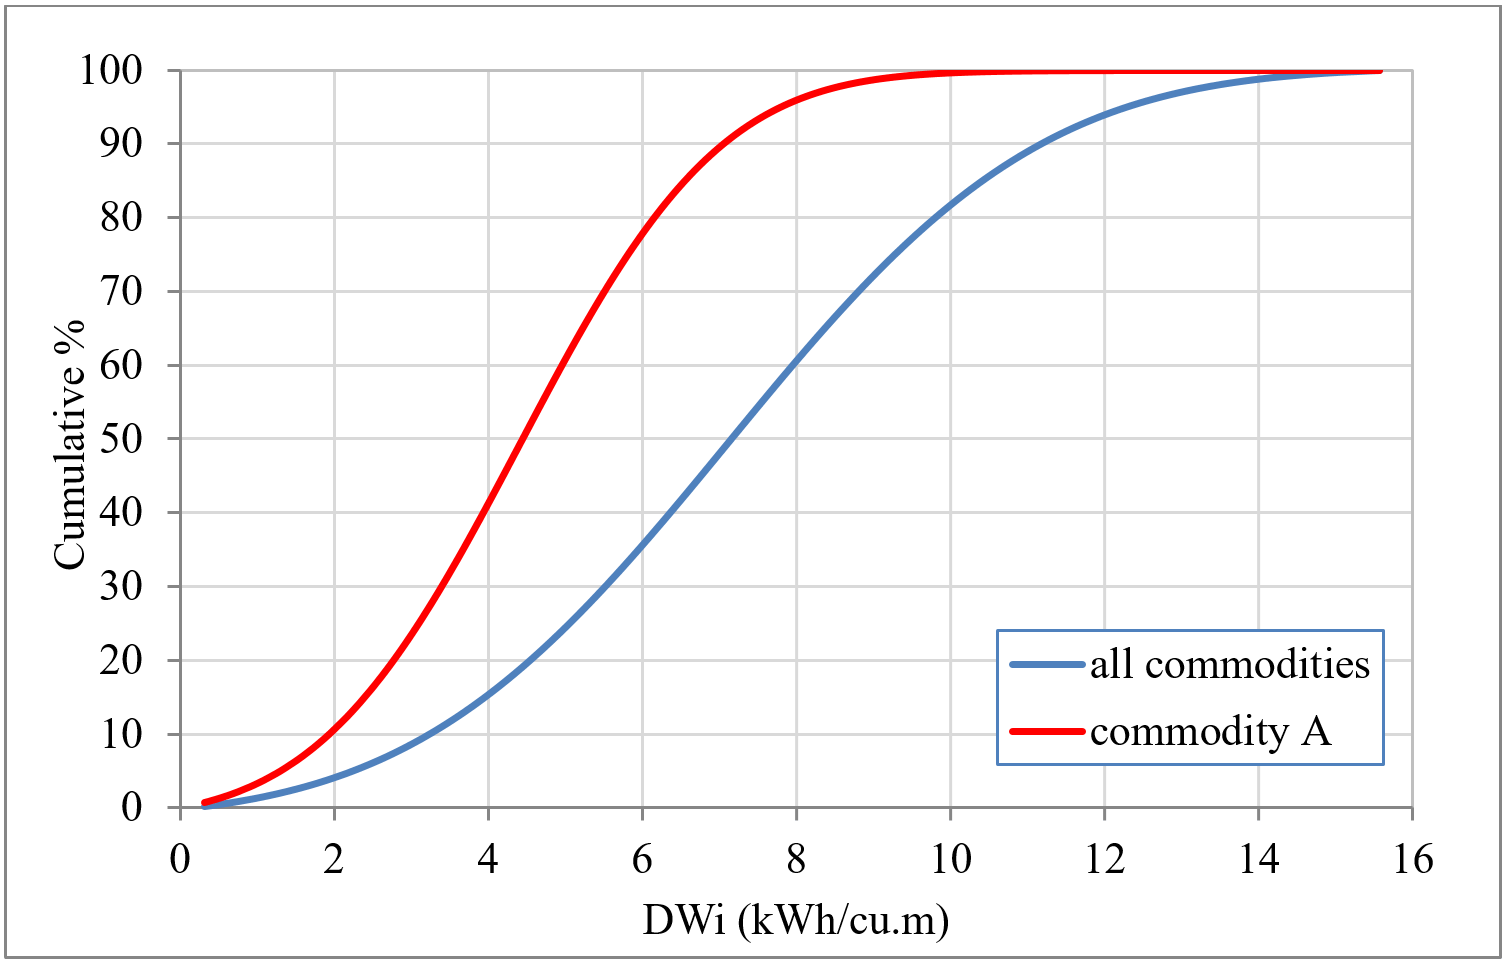 figure 1 - Cumulative Distributions of the DWi Parameter of a Particular Commodity vs All Commodities Combined